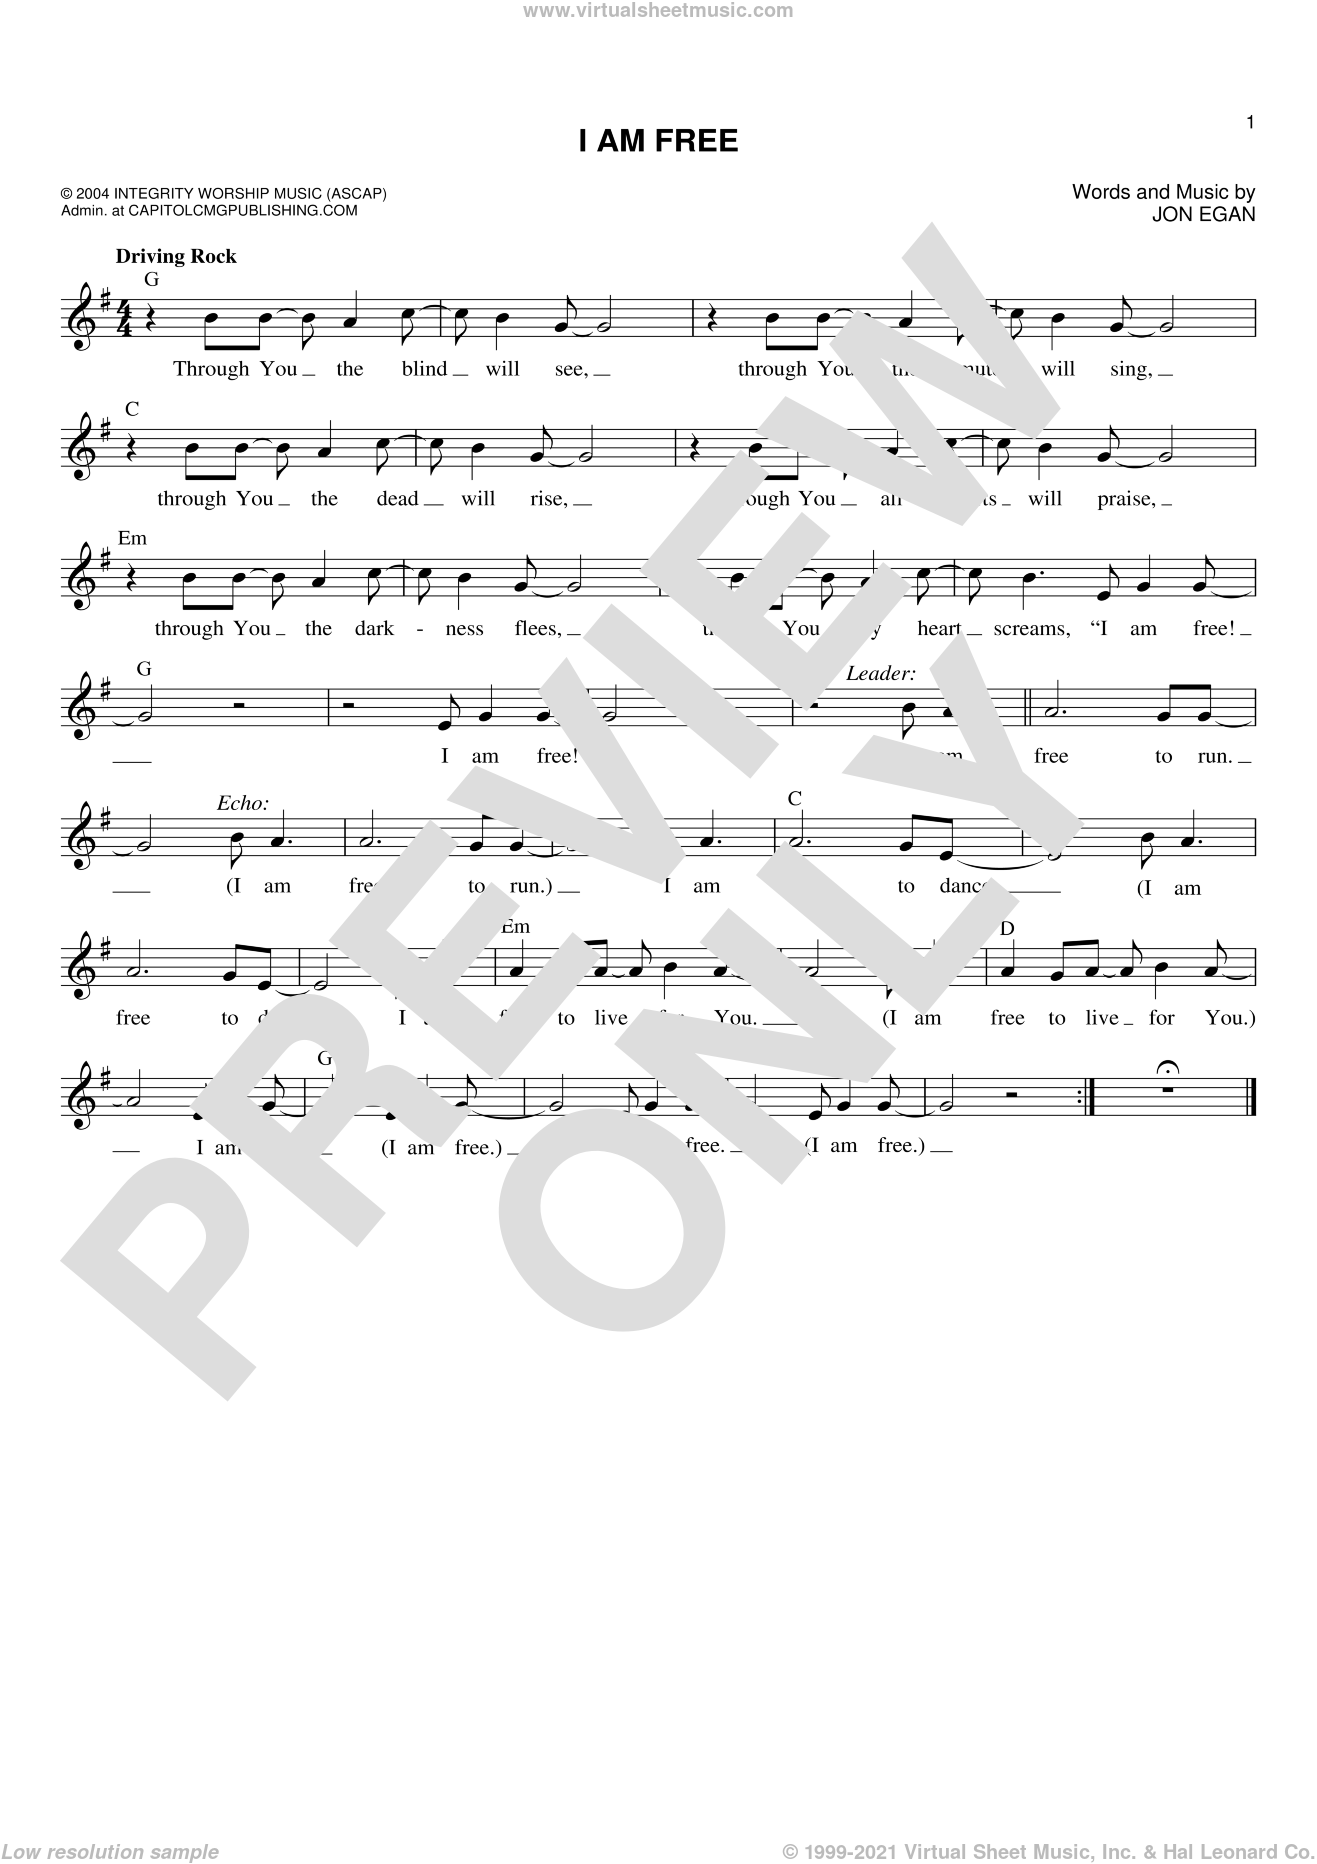 I Am Free sheet music for voice and other instruments (fake book) by Jon Egan, intermediate skill level